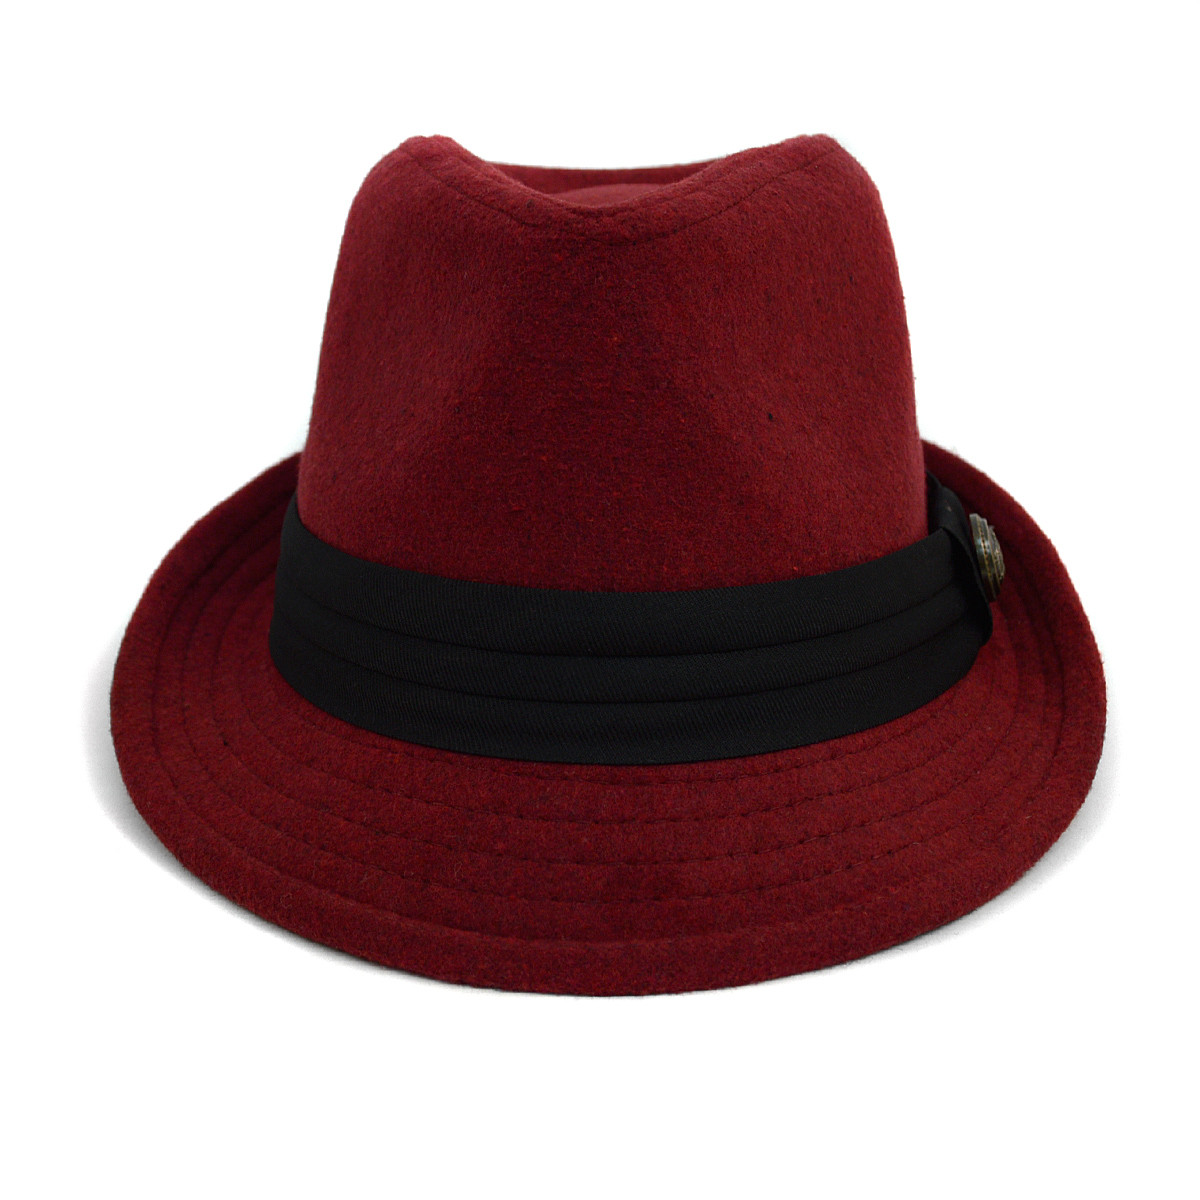 Fall/Winter Fedora Hat with Button Accent & Band Trim H171227